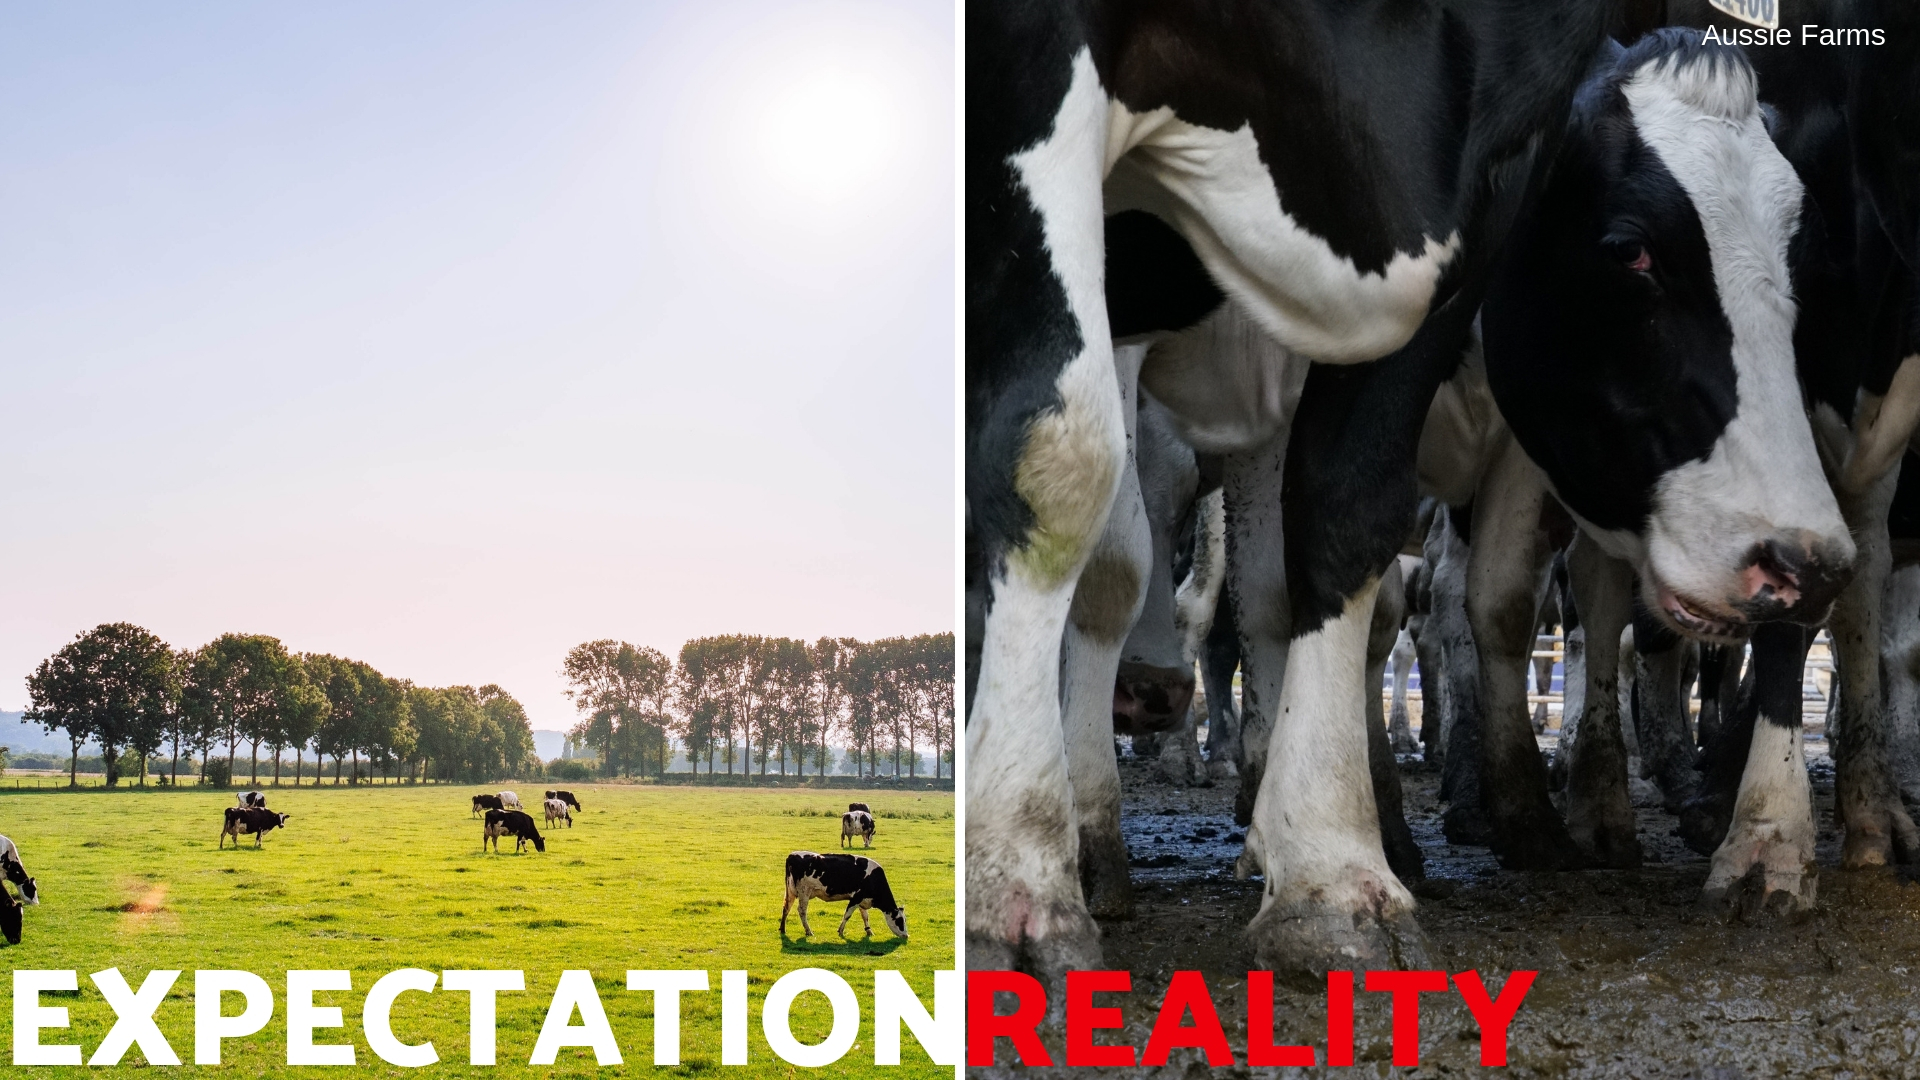 The reality of cows used for food.